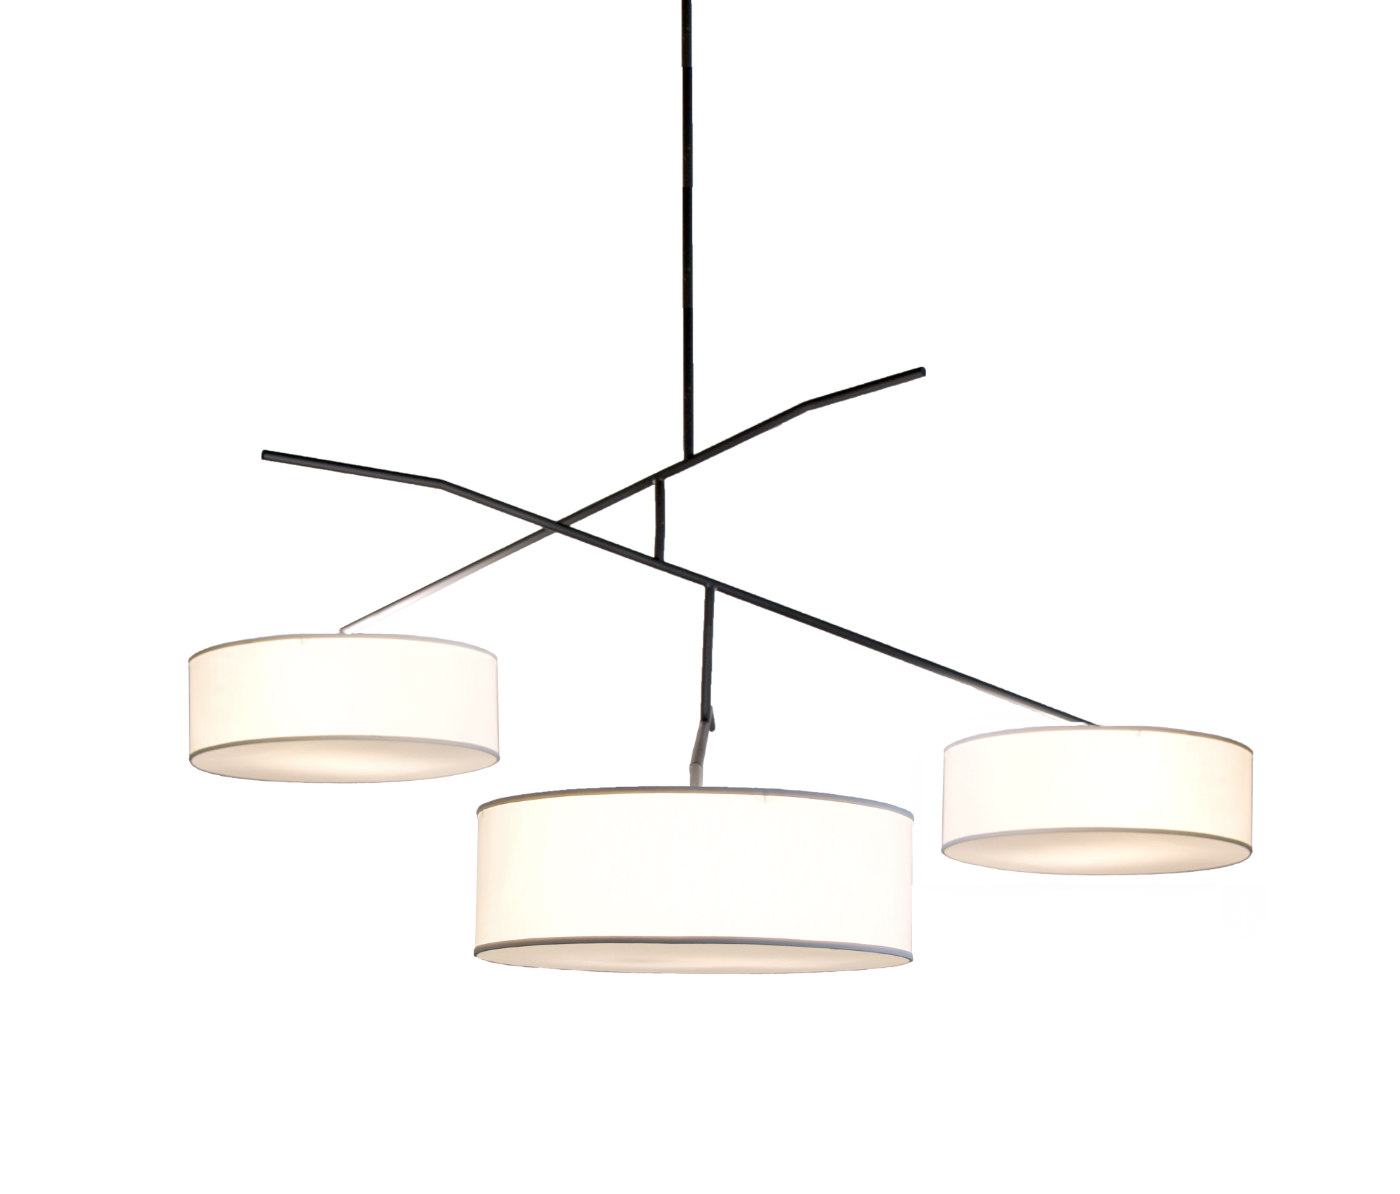 Ludwig and Larsen Ceiling Lamps